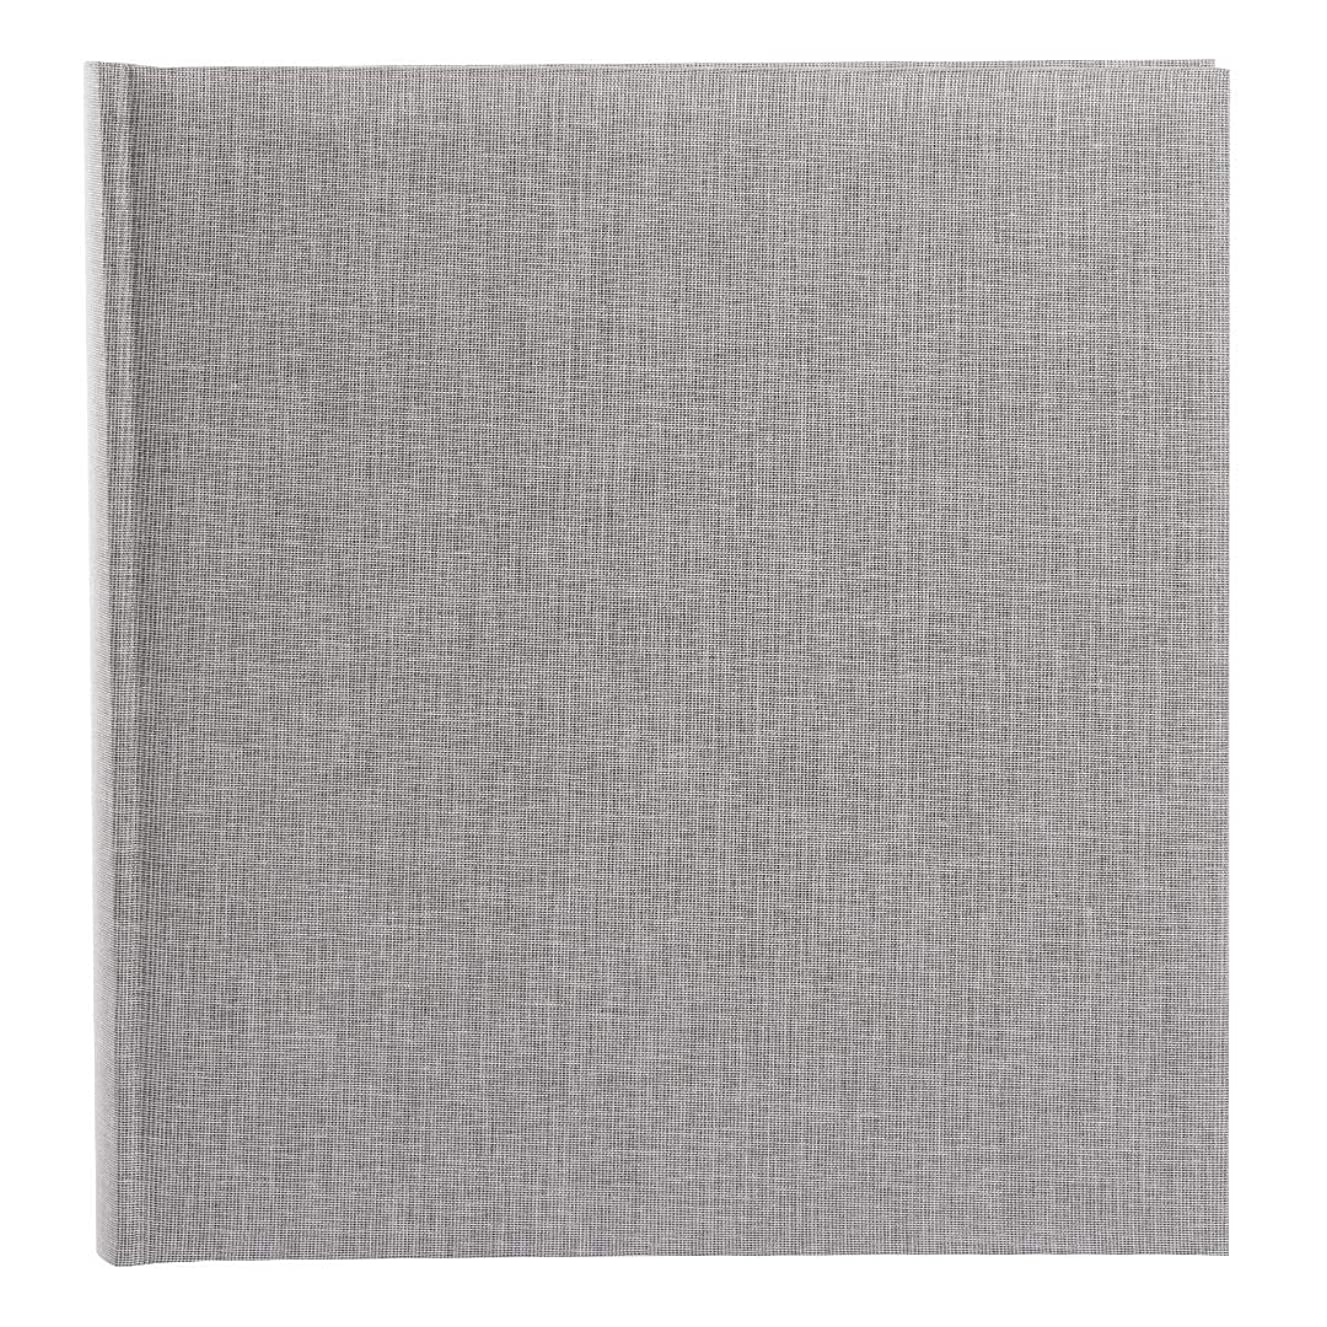 Goldbuch Photo Album Summertime Trend 2?Grey Linen, 30?x 31?cm with 100?White Pages with Pergamine Dividers, 31606